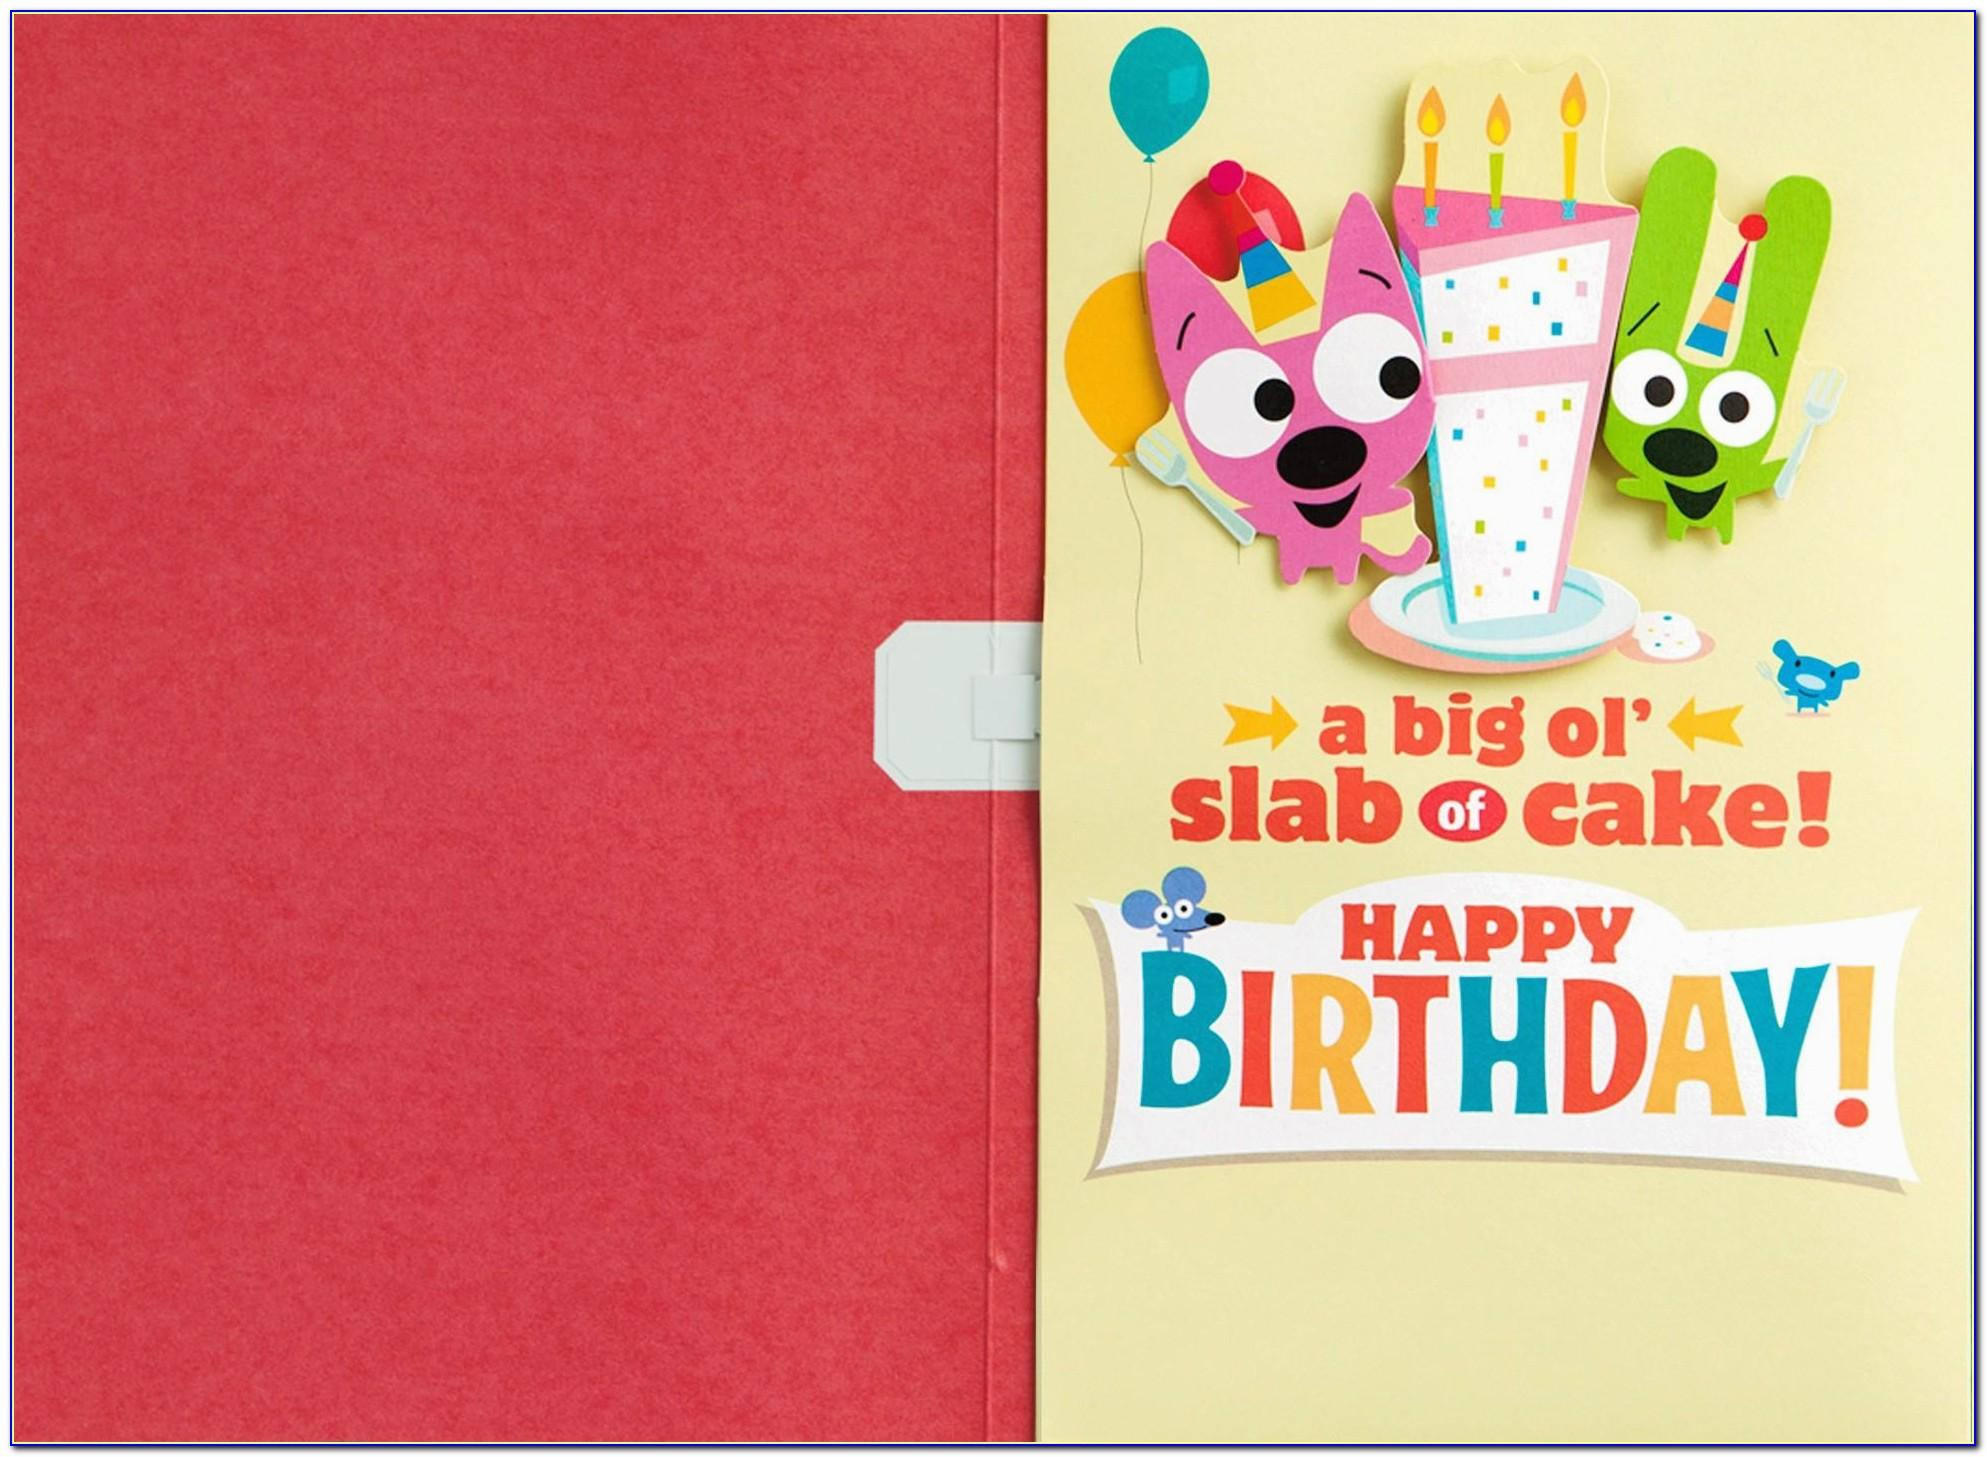 Hoops And Yoyo Birthday Cards For Free